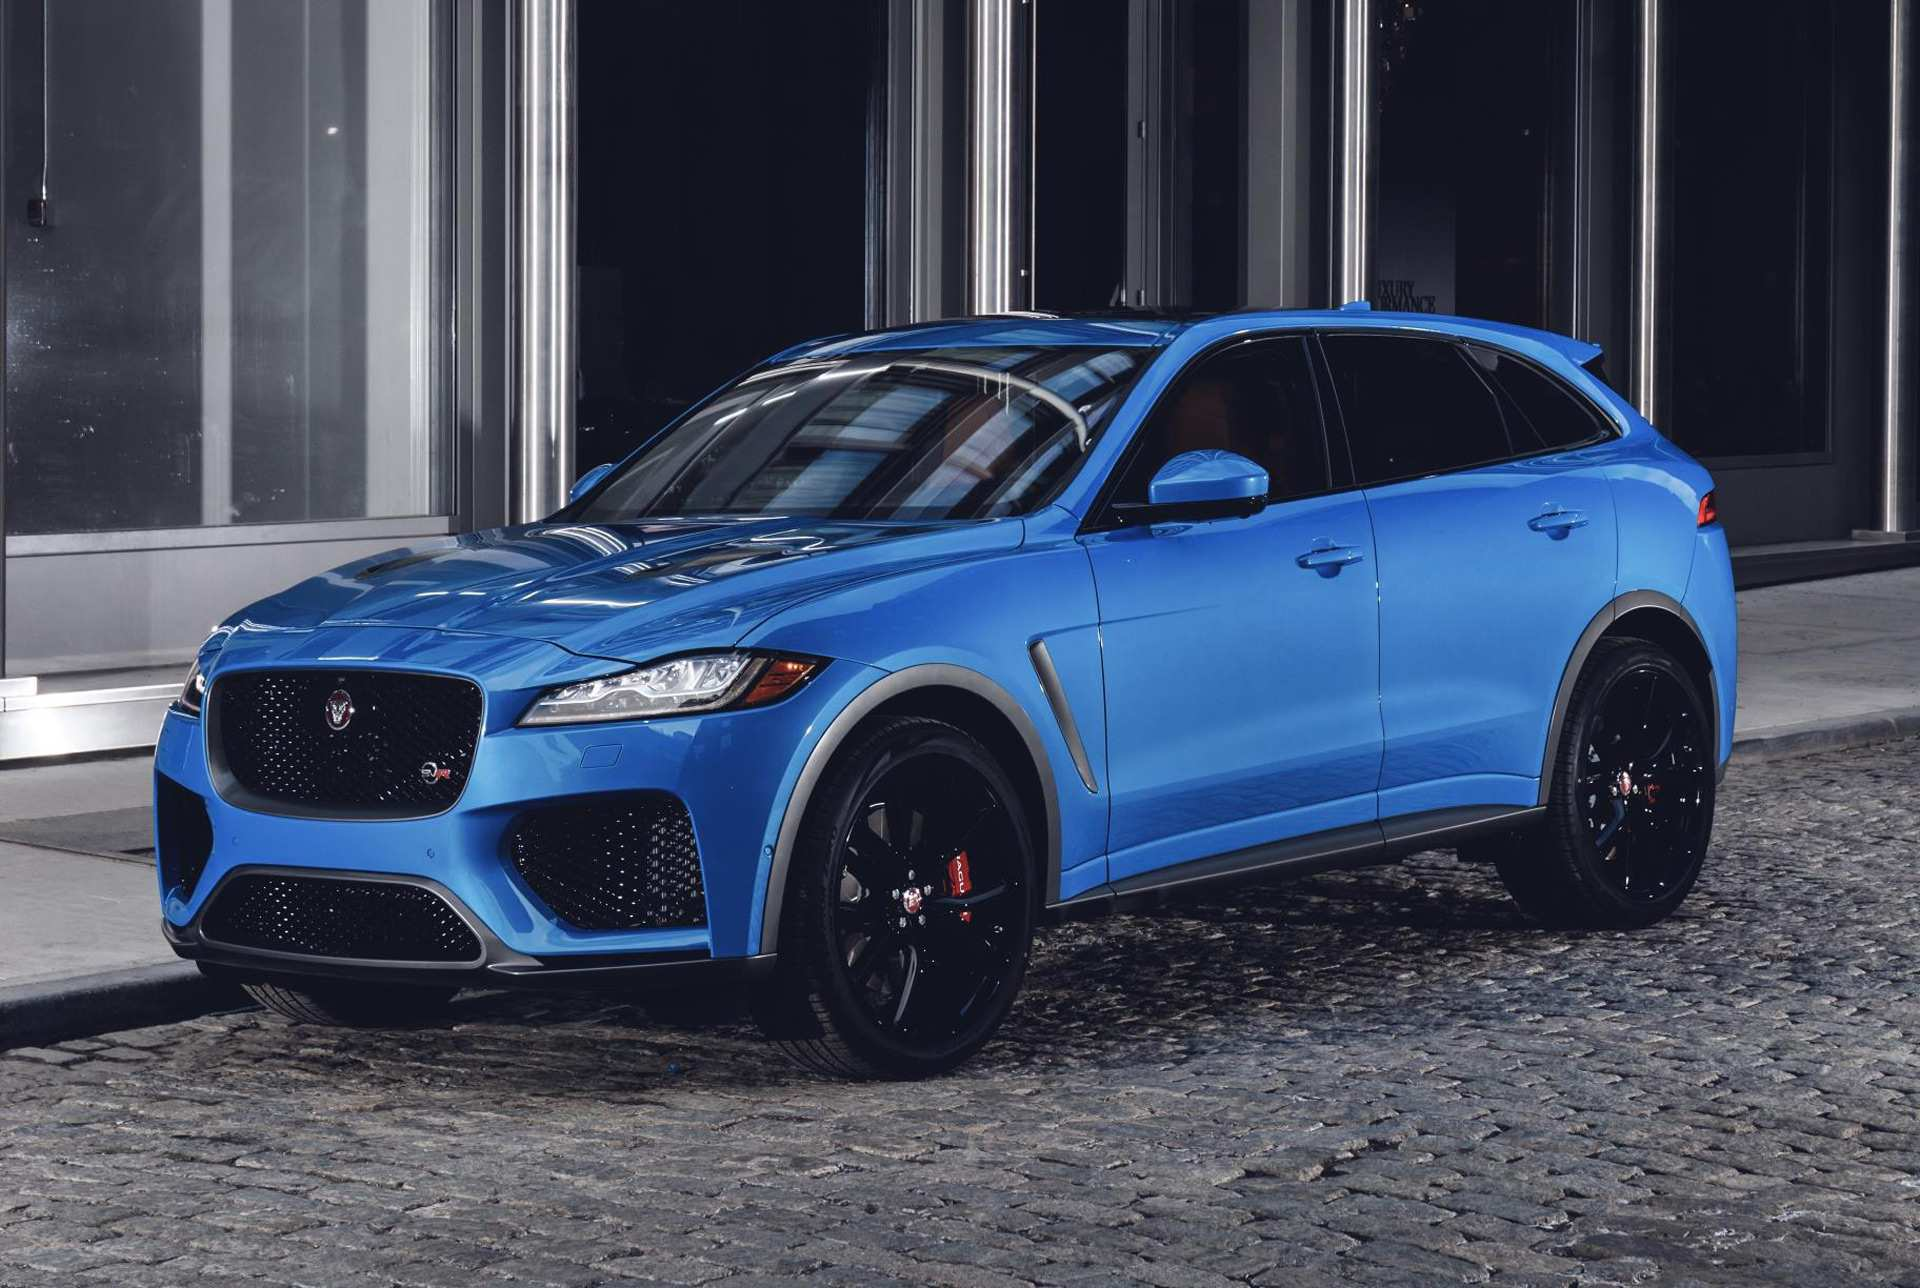 30 Best Review 2020 Jaguar F Pace Svr Model for 2020 Jaguar F Pace Svr